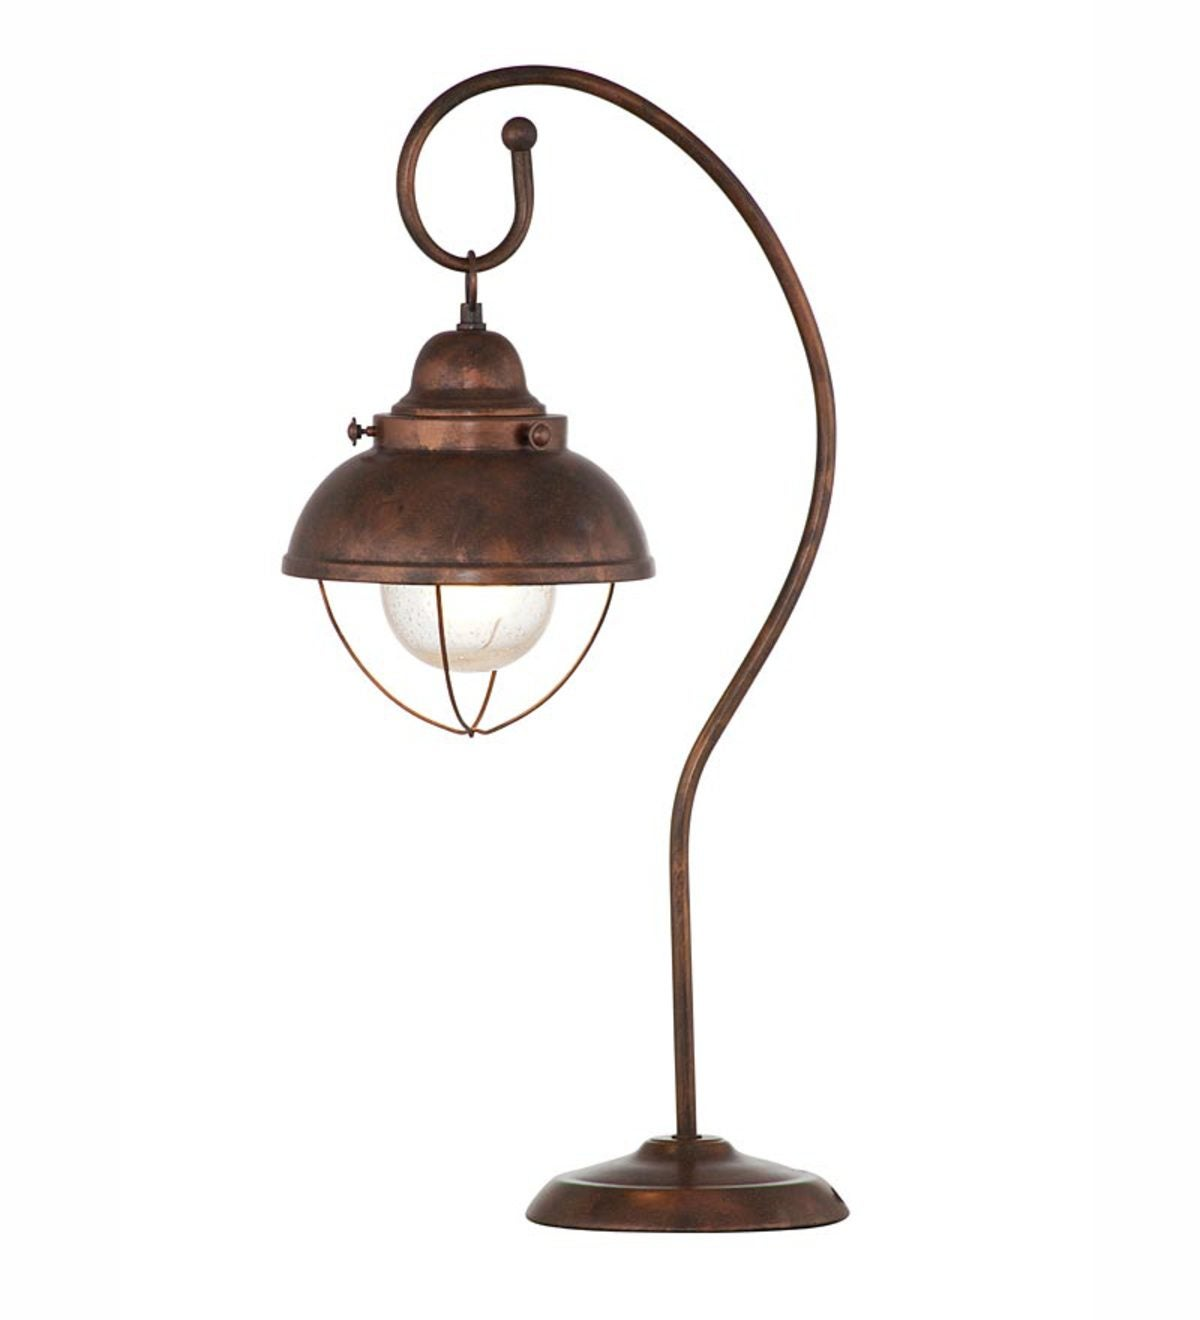 Metal Allegheny Table Lamp in Copper Finish